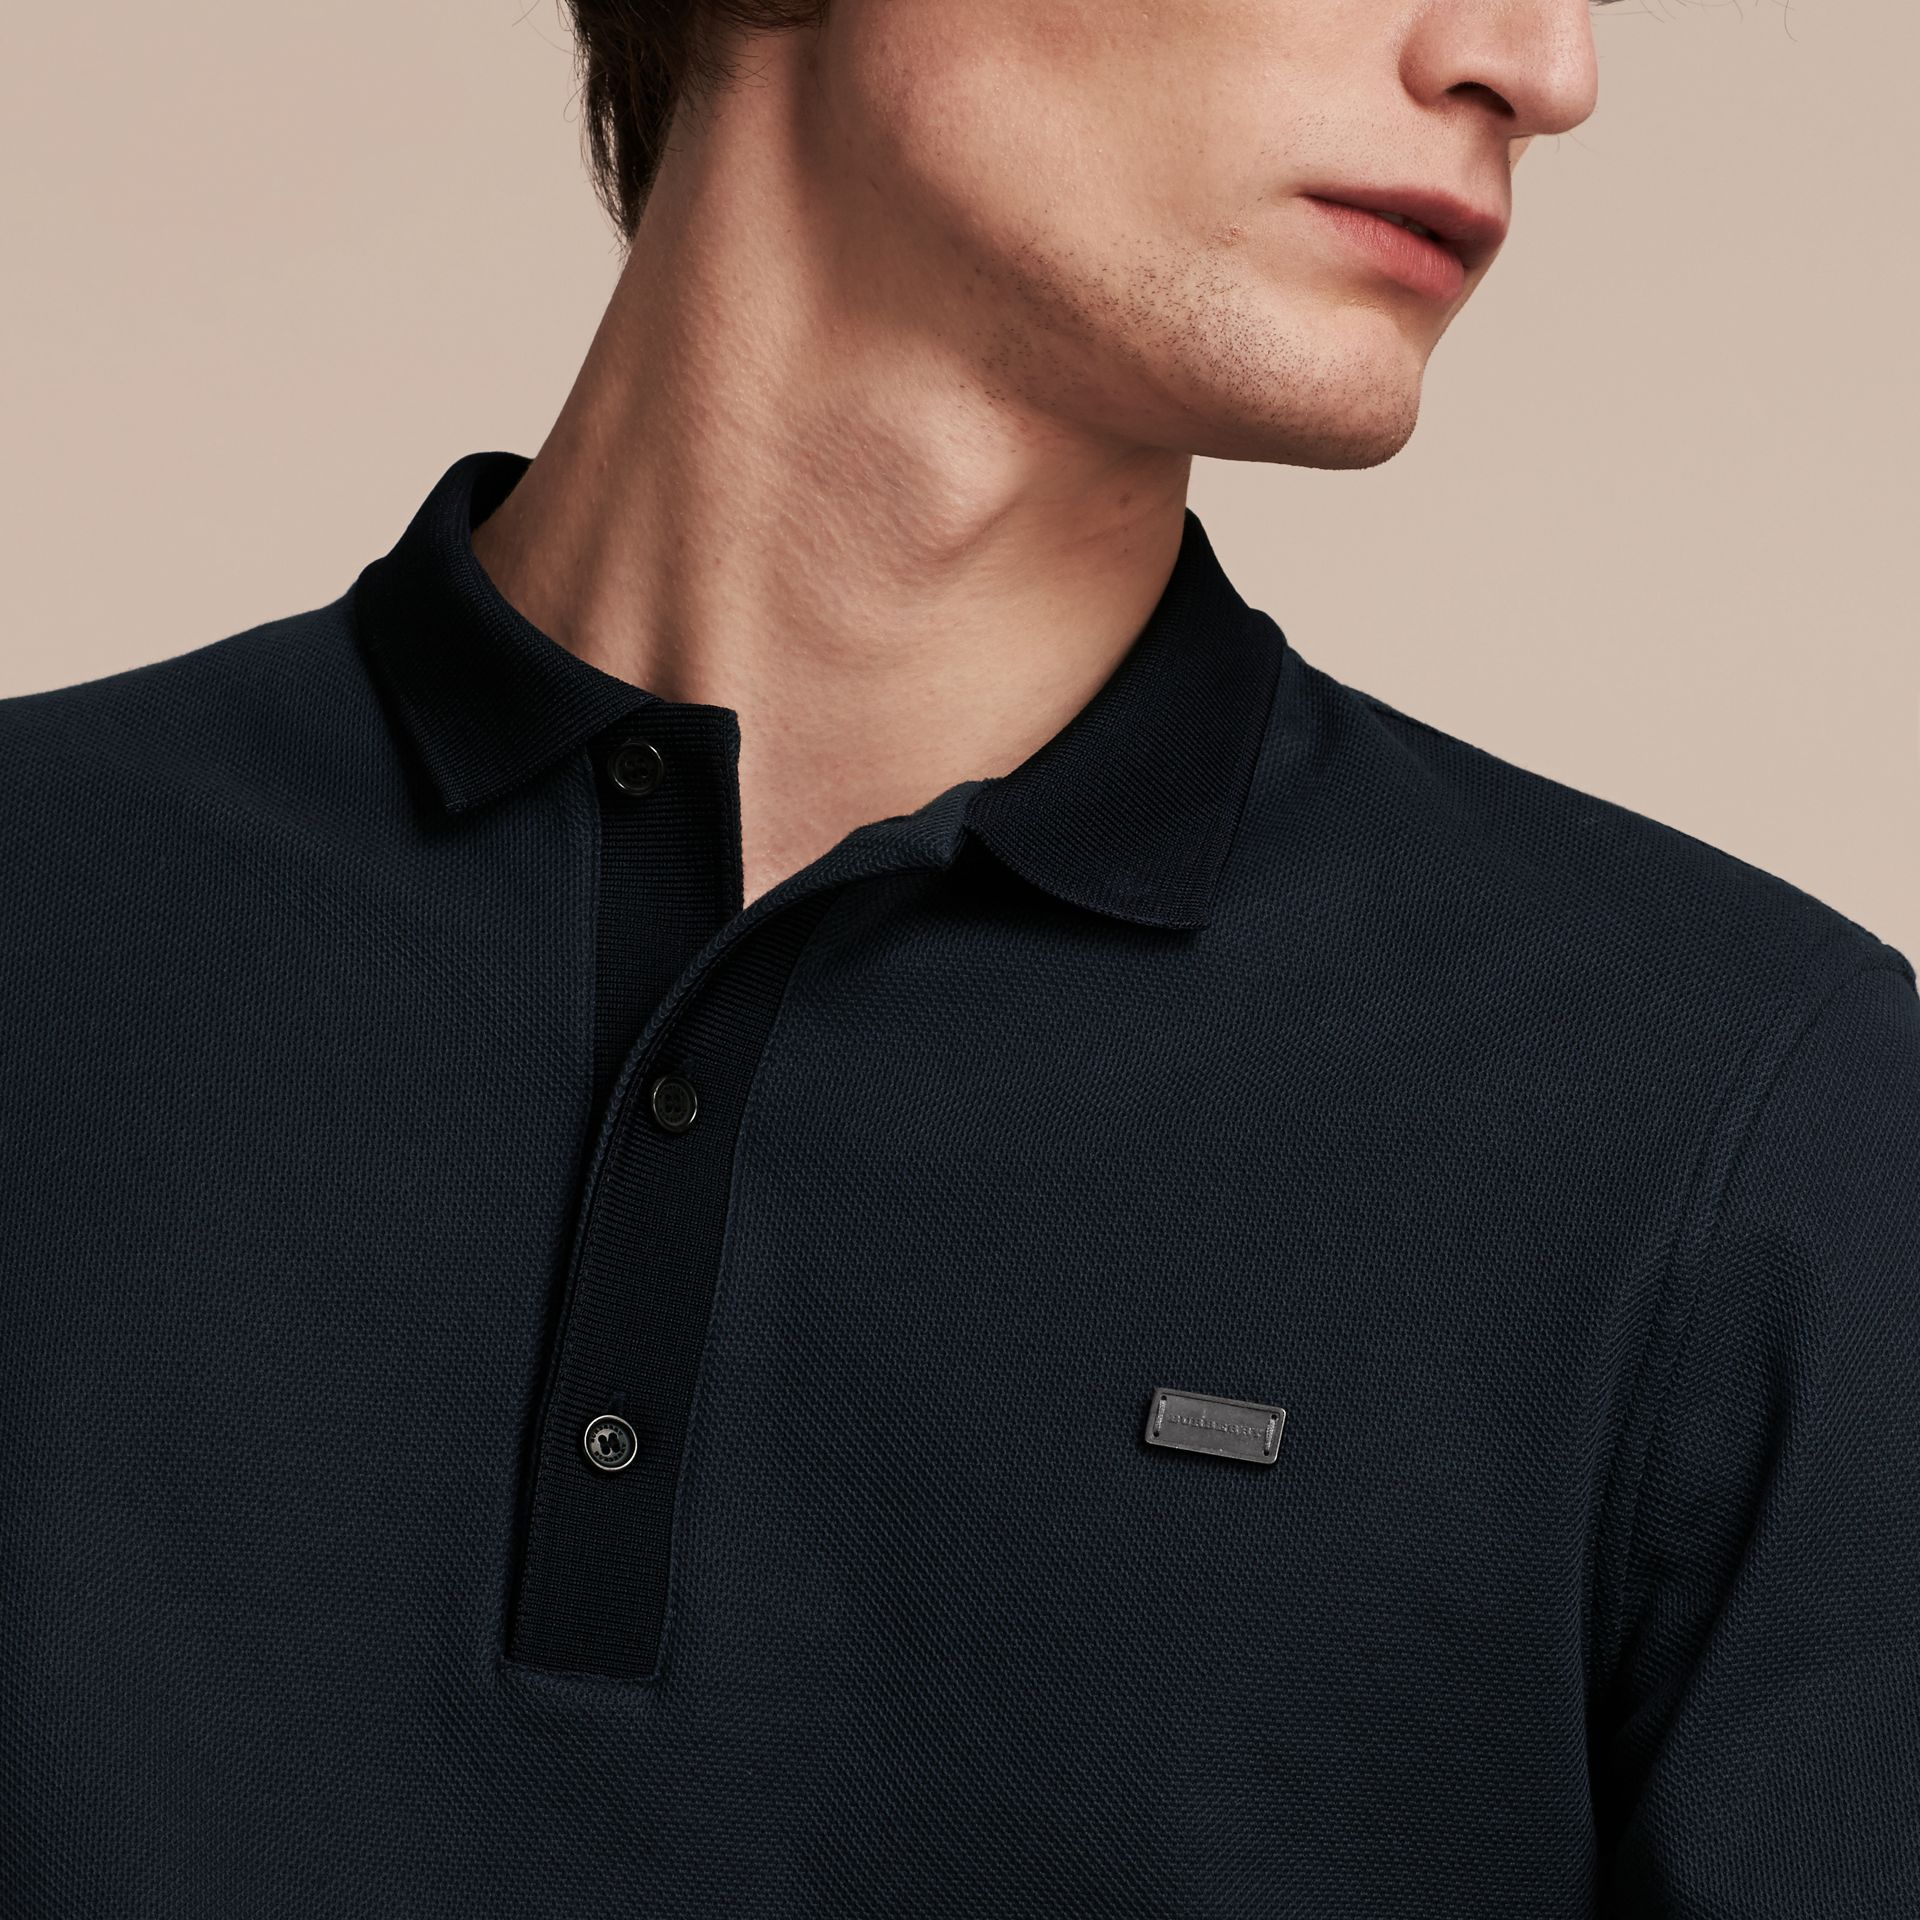 Storm blue/navy Long-sleeved Cotton Piqué Polo Shirt Storm Blue/navy - gallery image 5